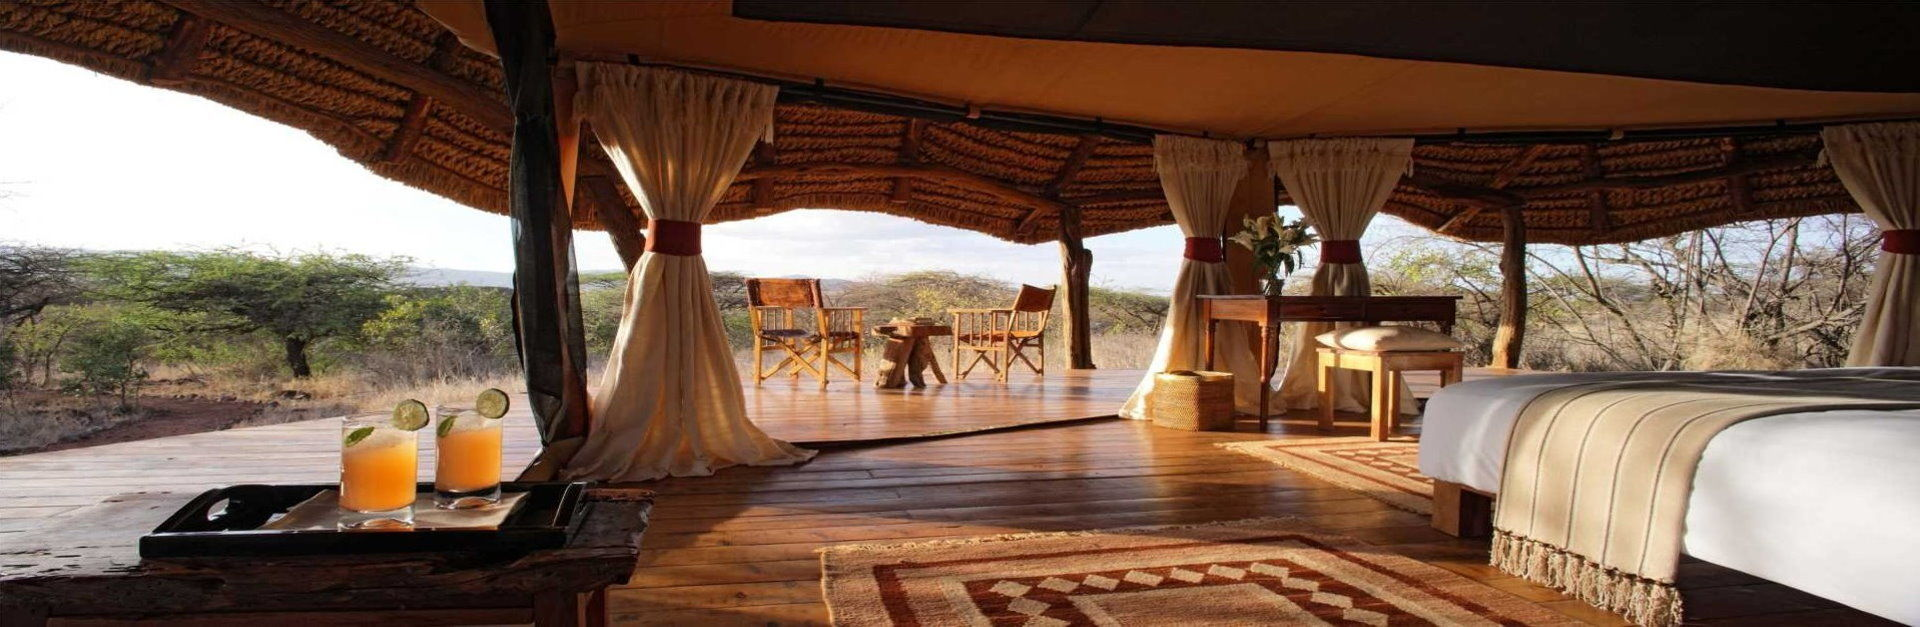 Tailormade Safaris Luxury Safari Lodge